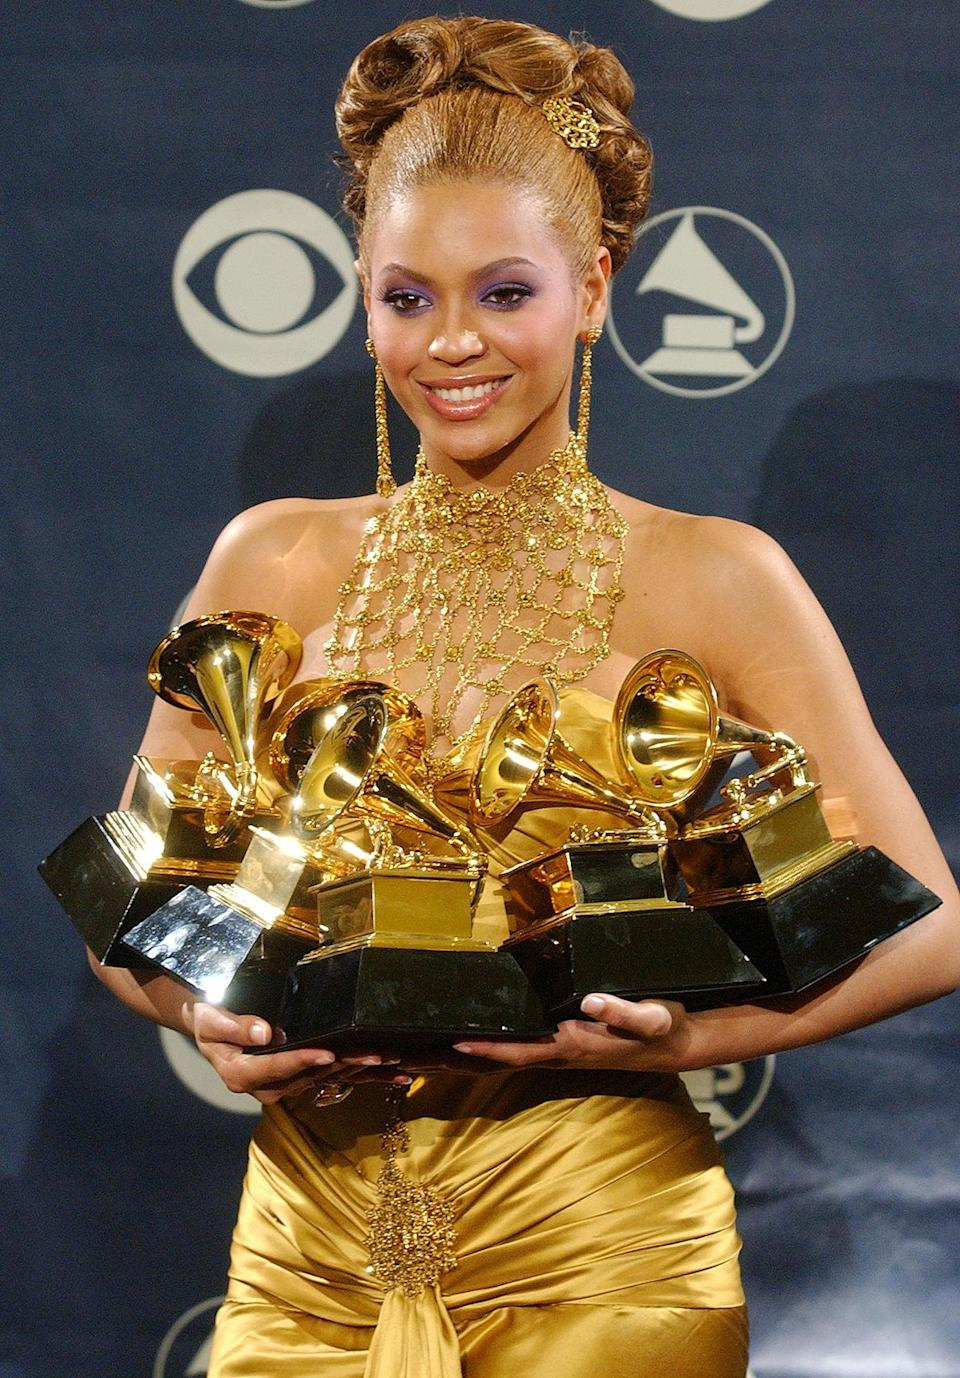 "<p>In 2004, Beyoncé embarked on her solo career, scoring six nominations. She went home with five Grammys, including awards for best contemporary R&B album for <em>Dangerously In Love</em>, best R&B song and best rap/sung collaboration for ""Crazy In Love,"" best R&B performance by a duo for ""The Closer I Get To You,"" and best female R&B vocal performance for ""Dangerously In Love 2."" </p> <p><strong>Beyoncé's Grammy Tally: </strong>8 </p>"